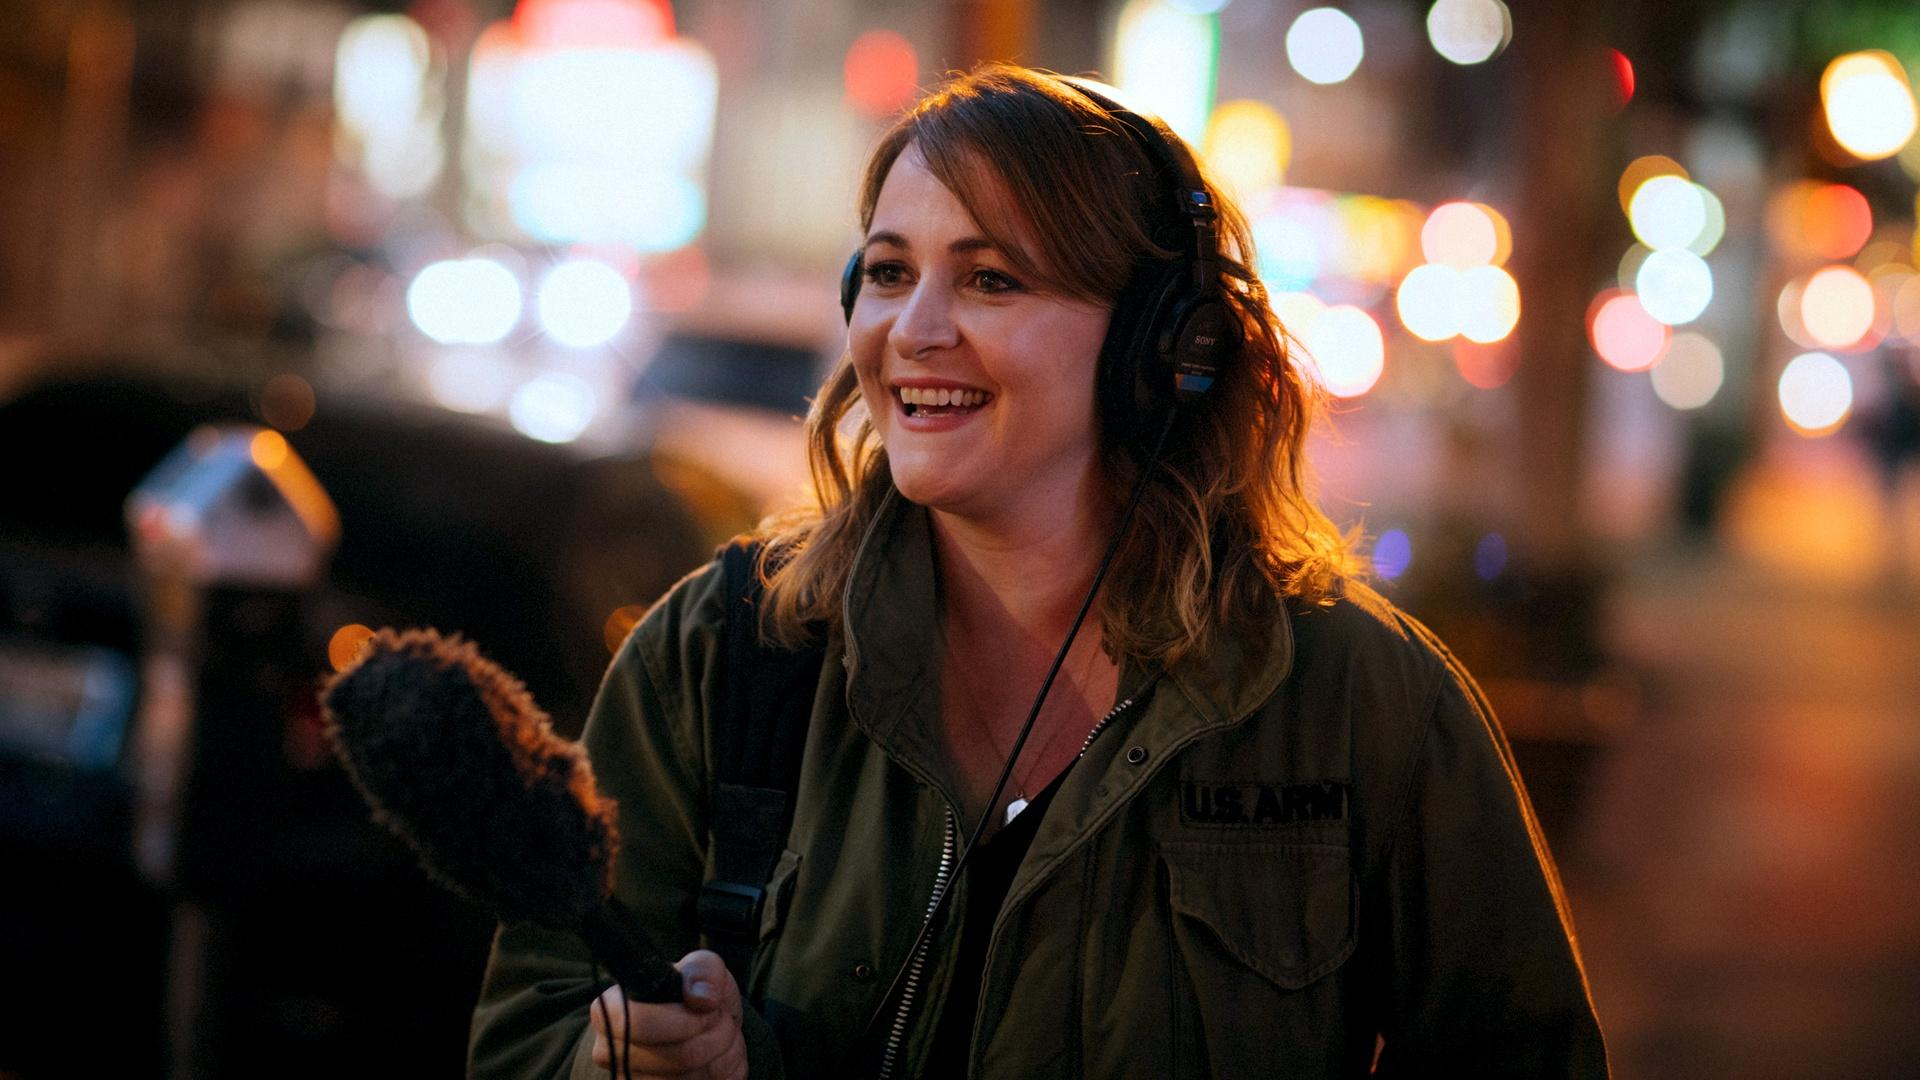 Kelly McEvers smiles. She is wearing headphones and holds a microphone.